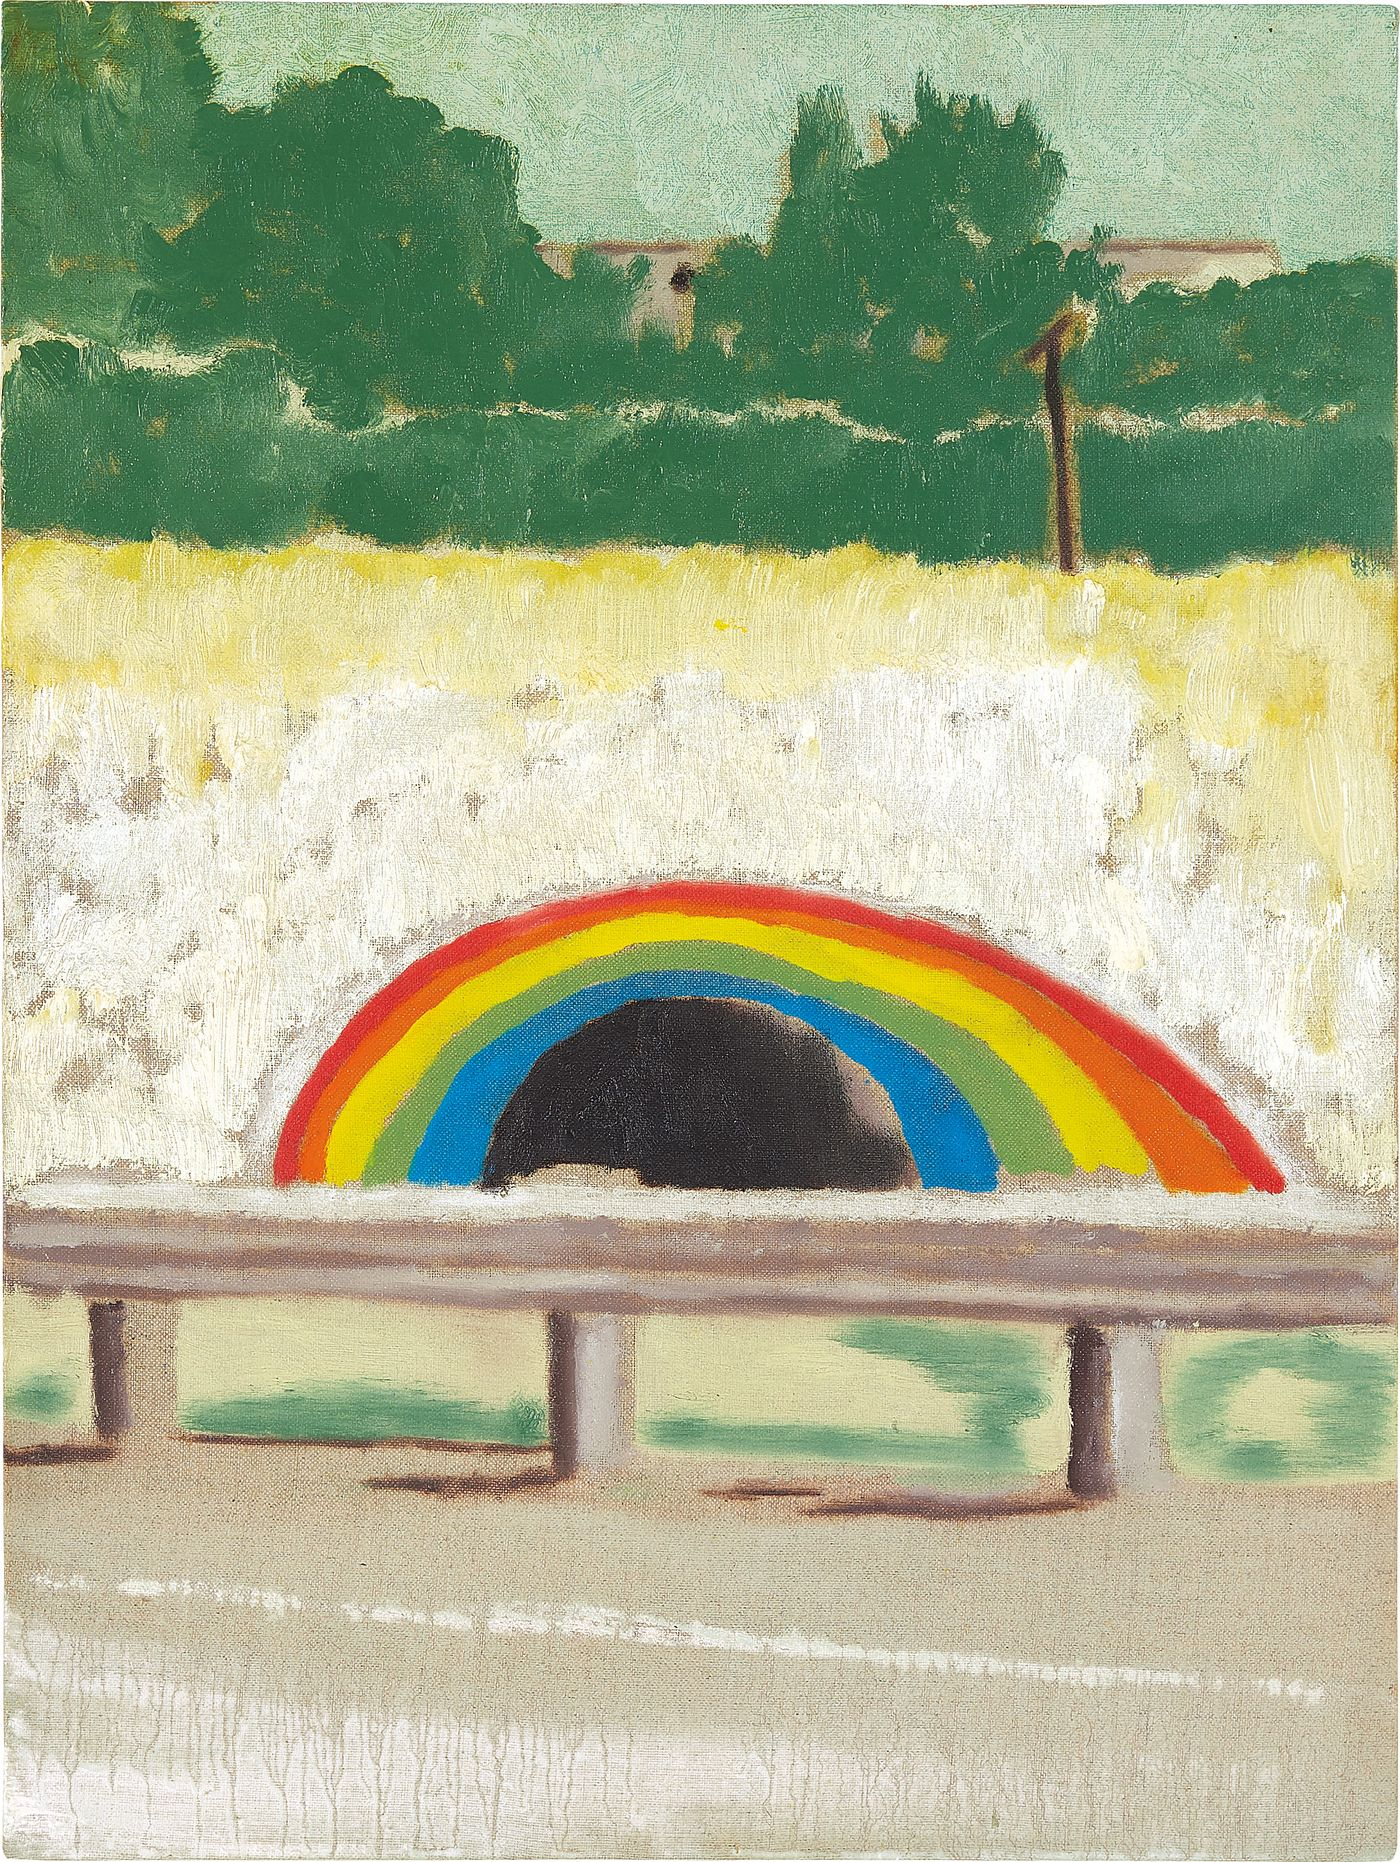 The mastery of Doig's painterly technique carries the quality of memory itself, as demonstrated by one of the artist's three canvases of the now-famous Don Valley Parkway tunnel in Toronto.